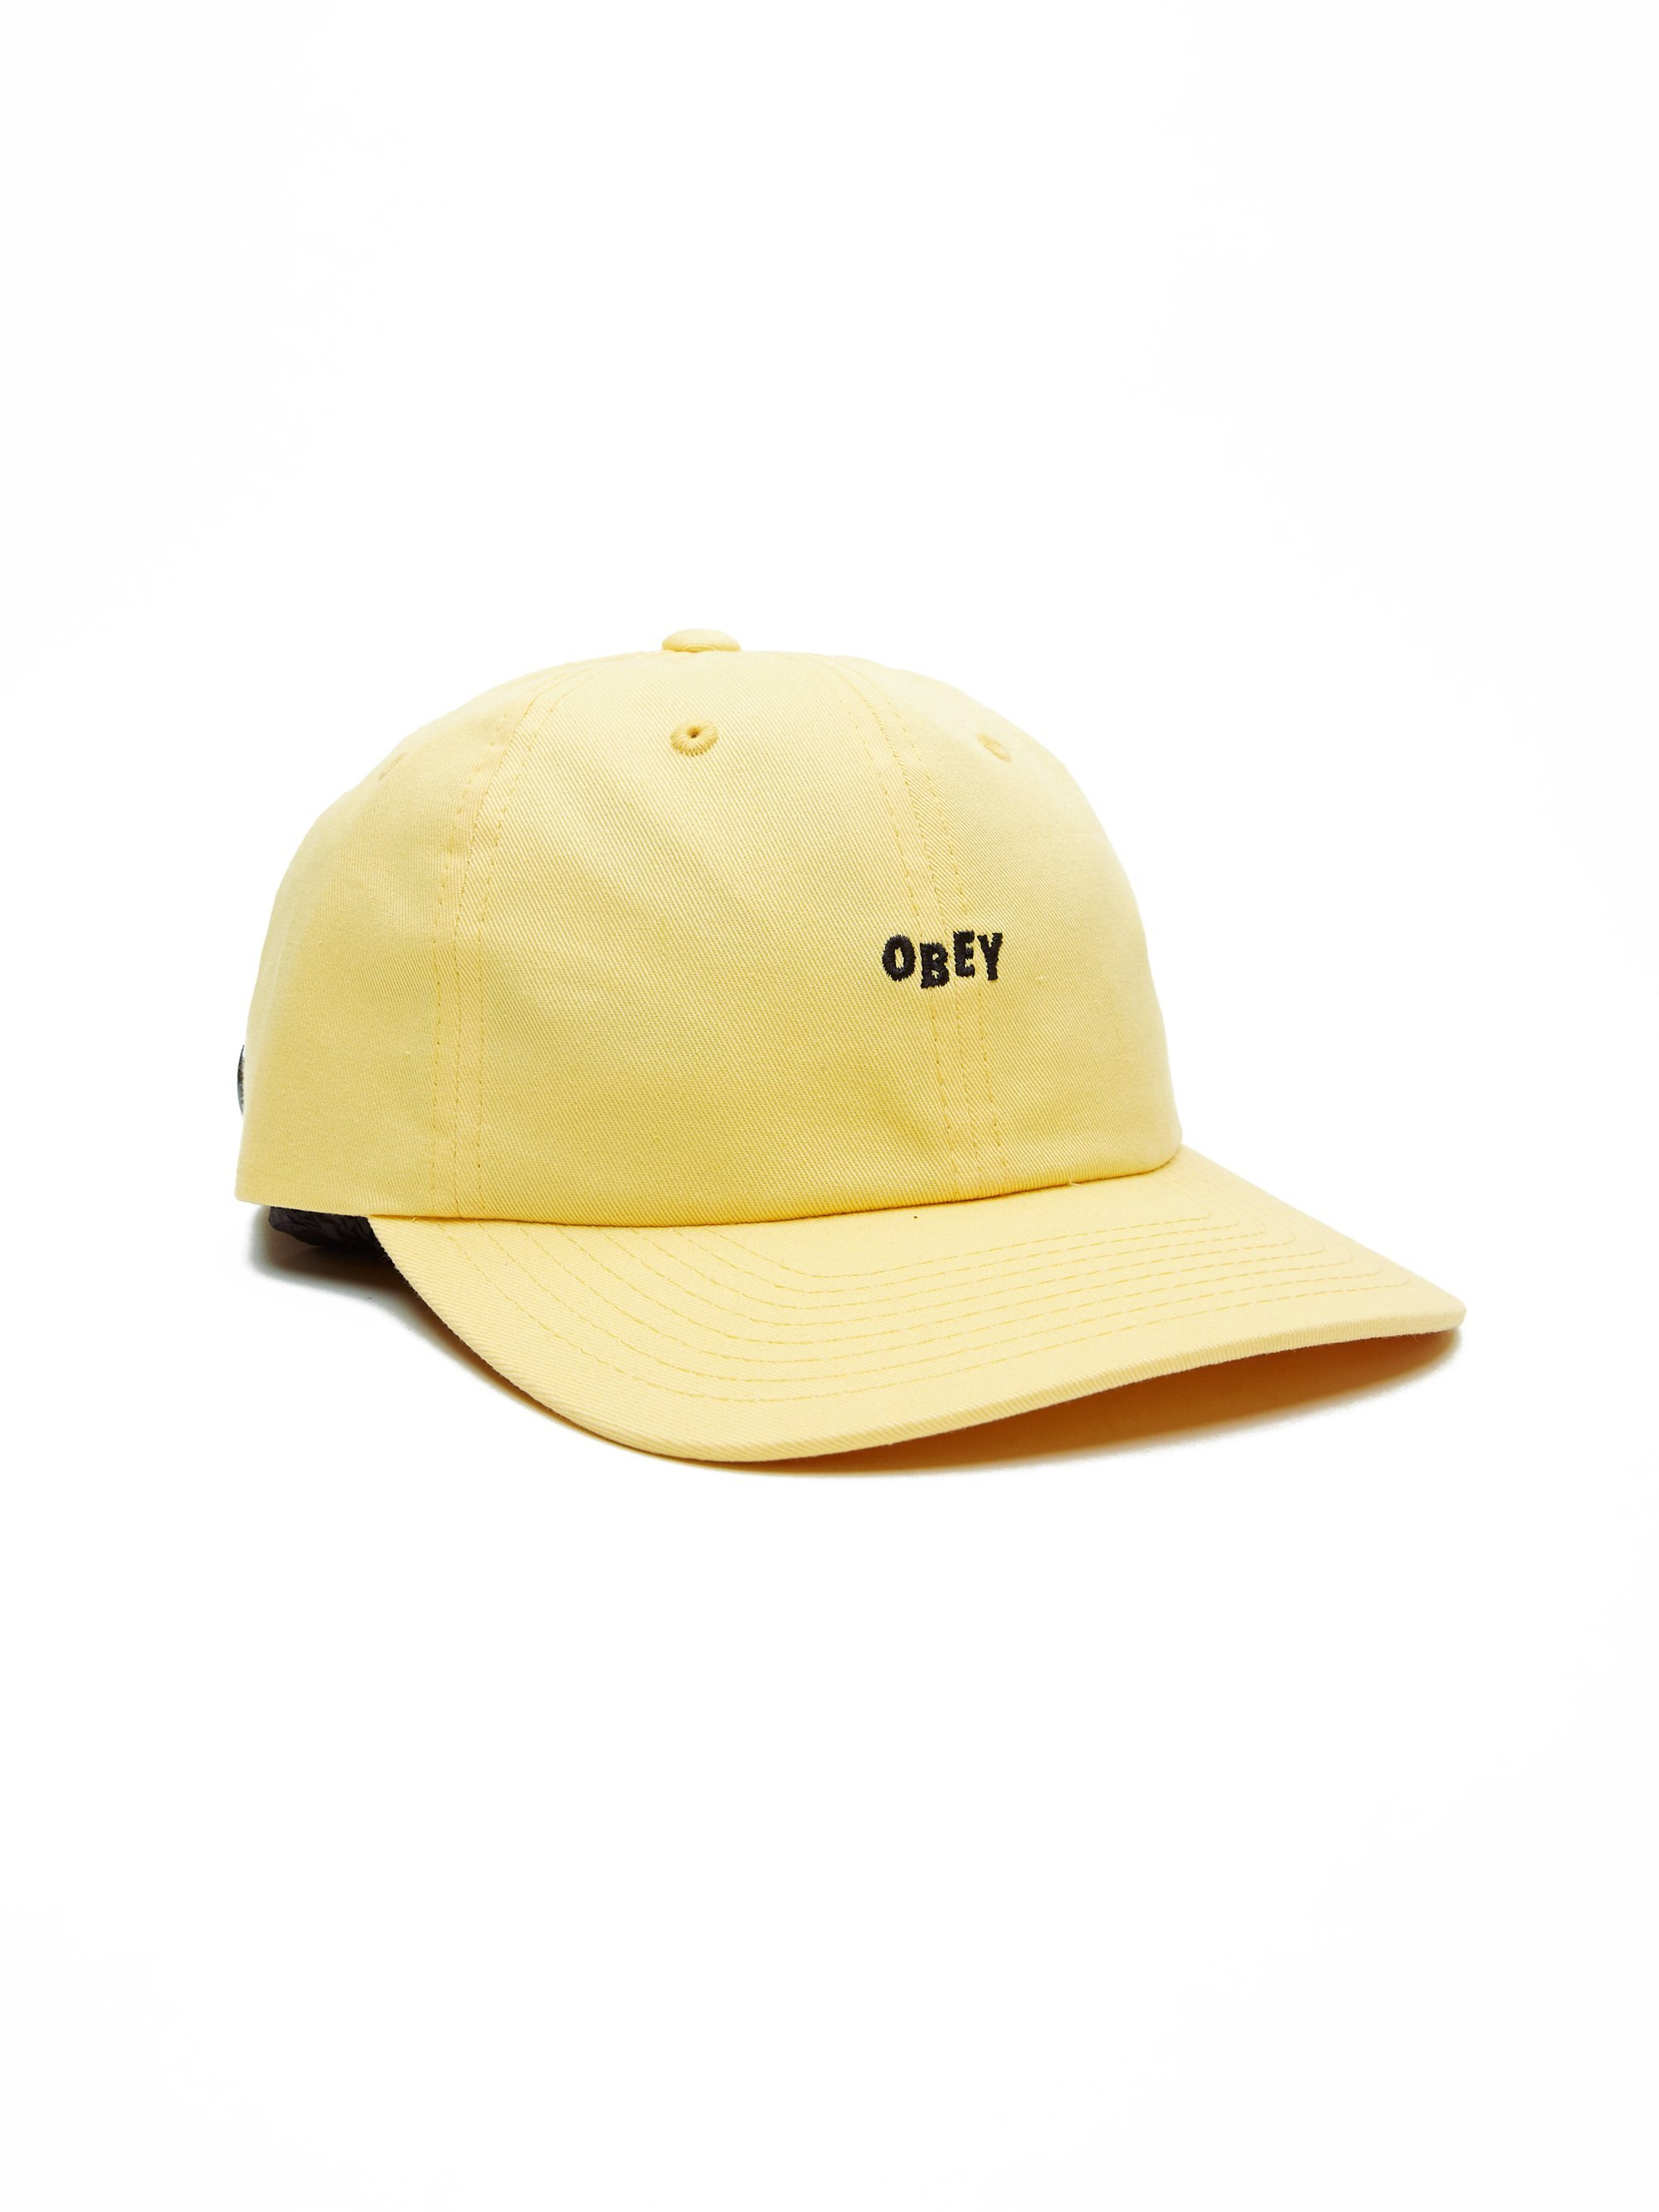 OBEY_Cutty_6_Panel_Snapback_100580074_ASP_1_2000x.jpg